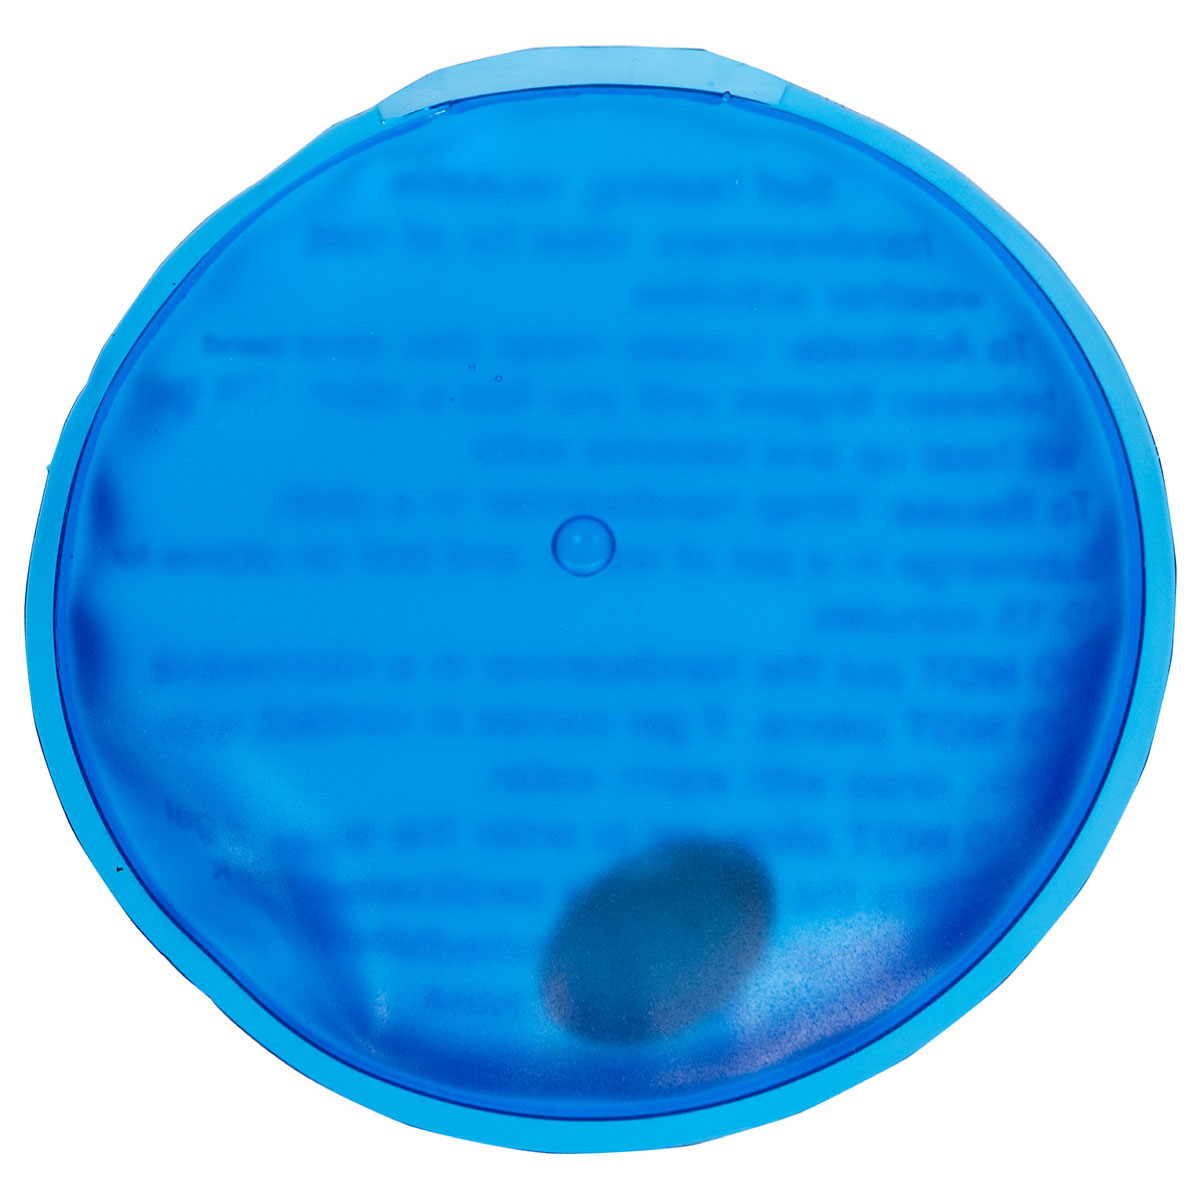 Blue Reusable Magic Hand Warmer Round